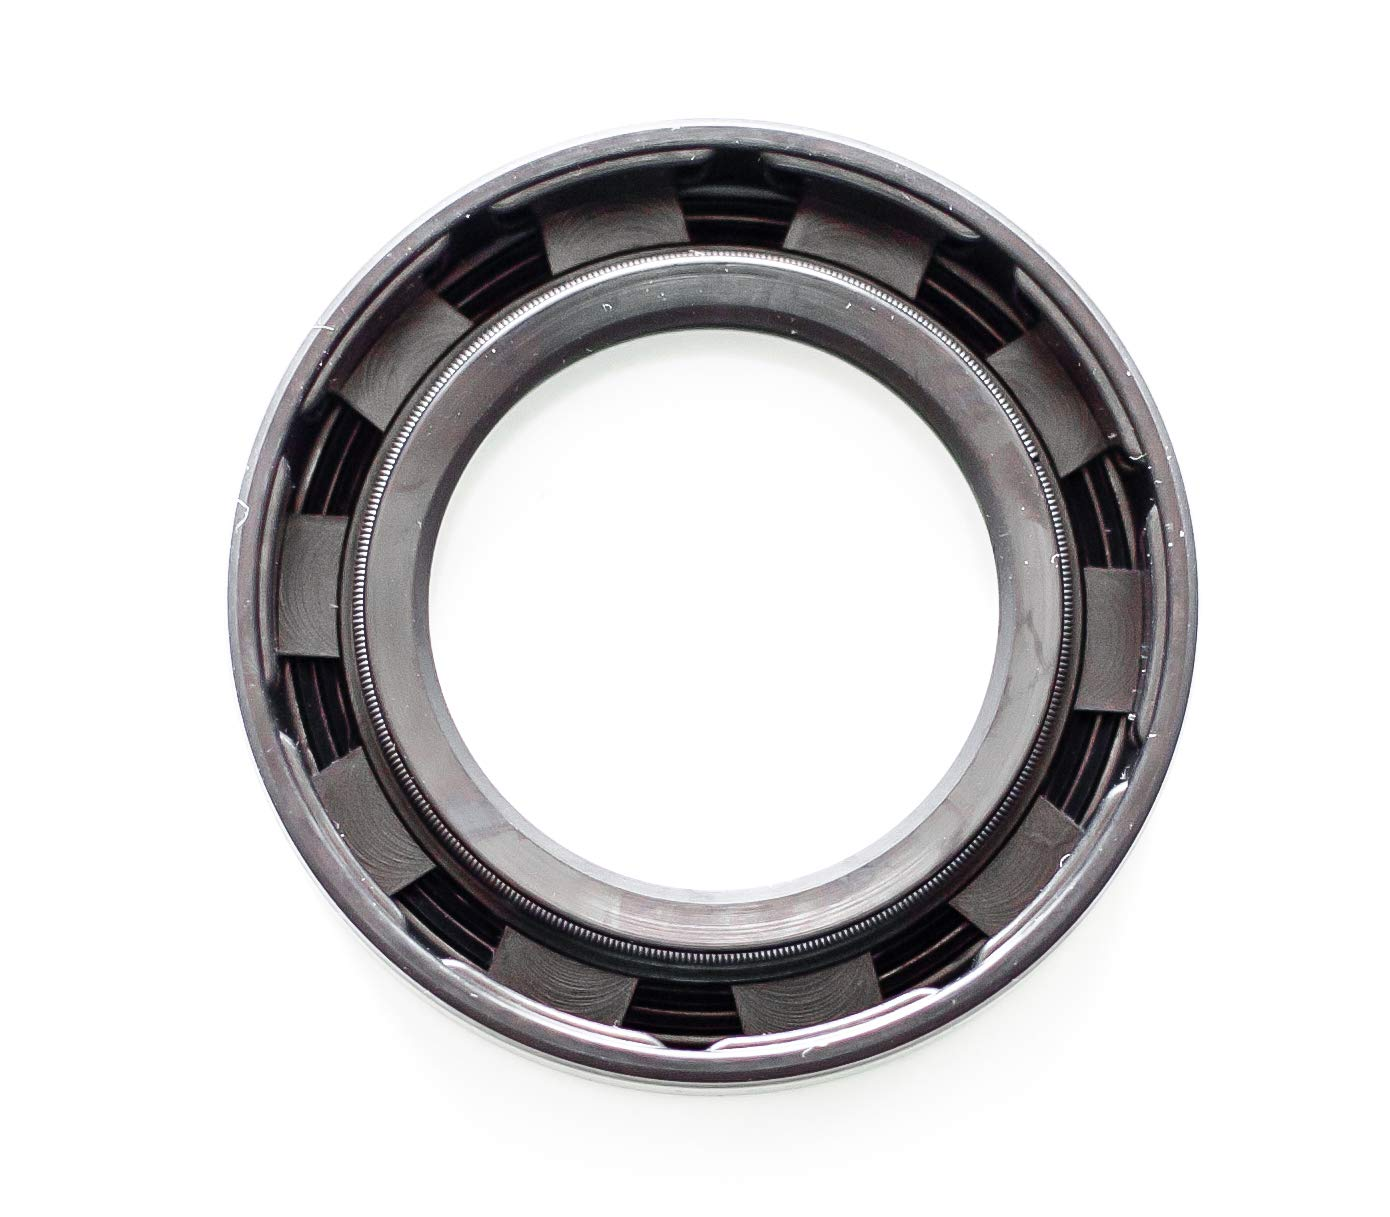 Oil Seal TC 32X52X10 Rubber Double Lip with Spring 32mmX52mmX10mm.